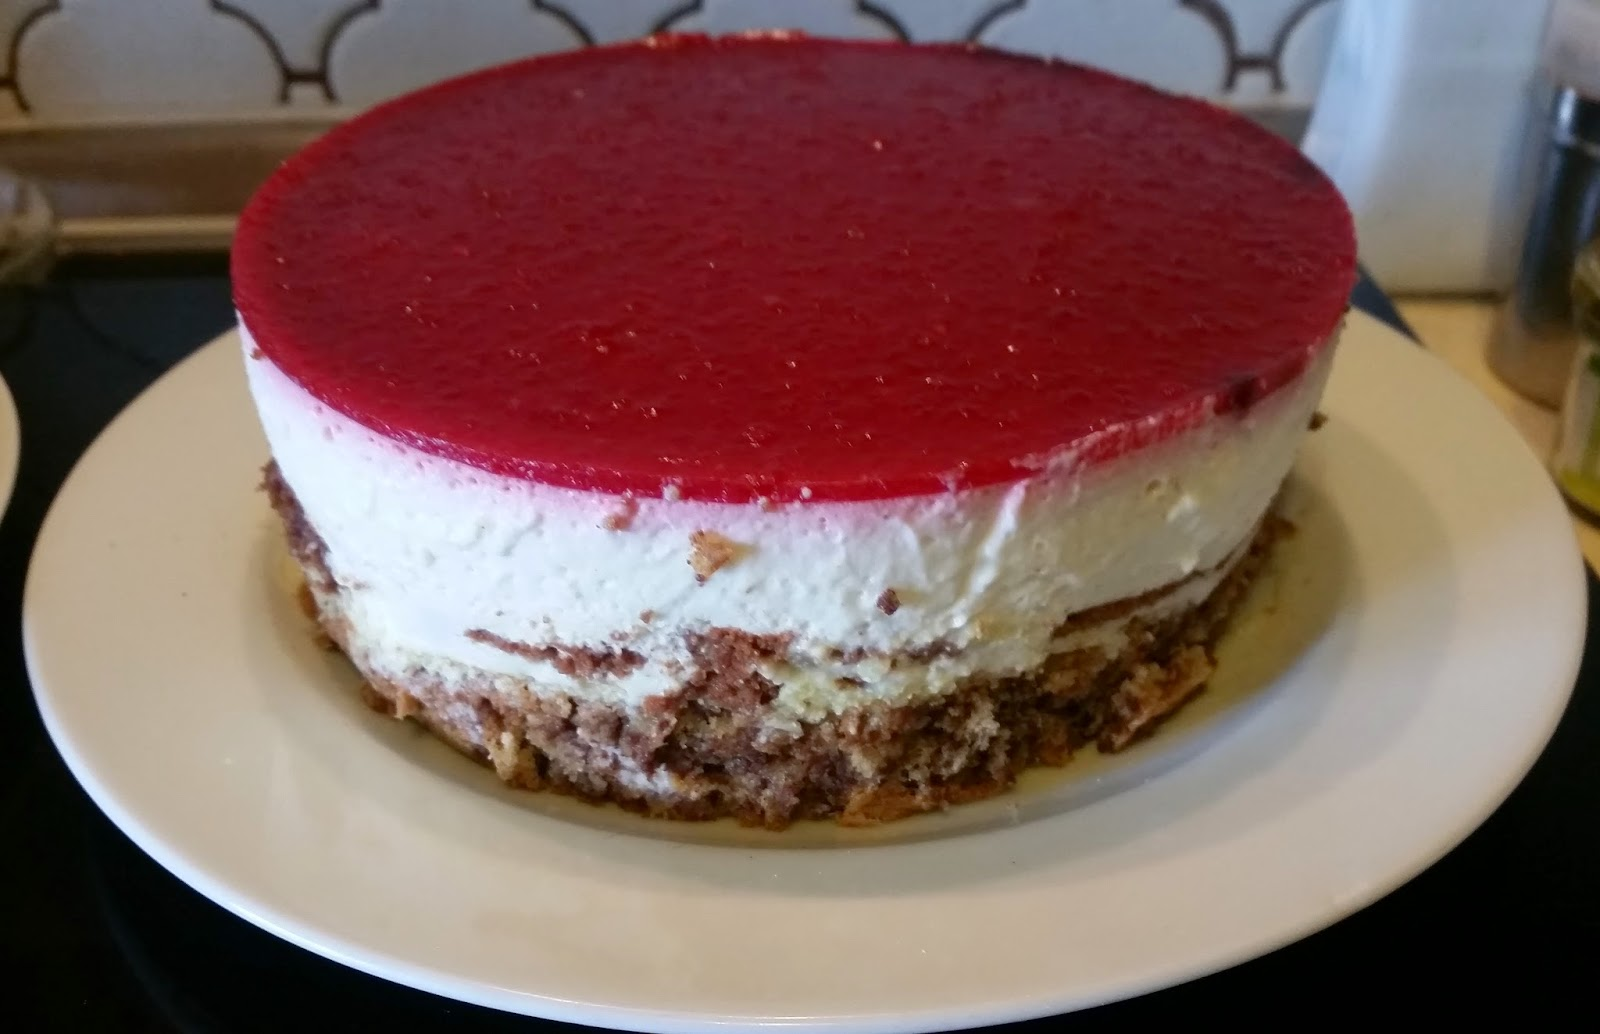 Sandy S Kitchendreams Himbeer Joghurt Torte